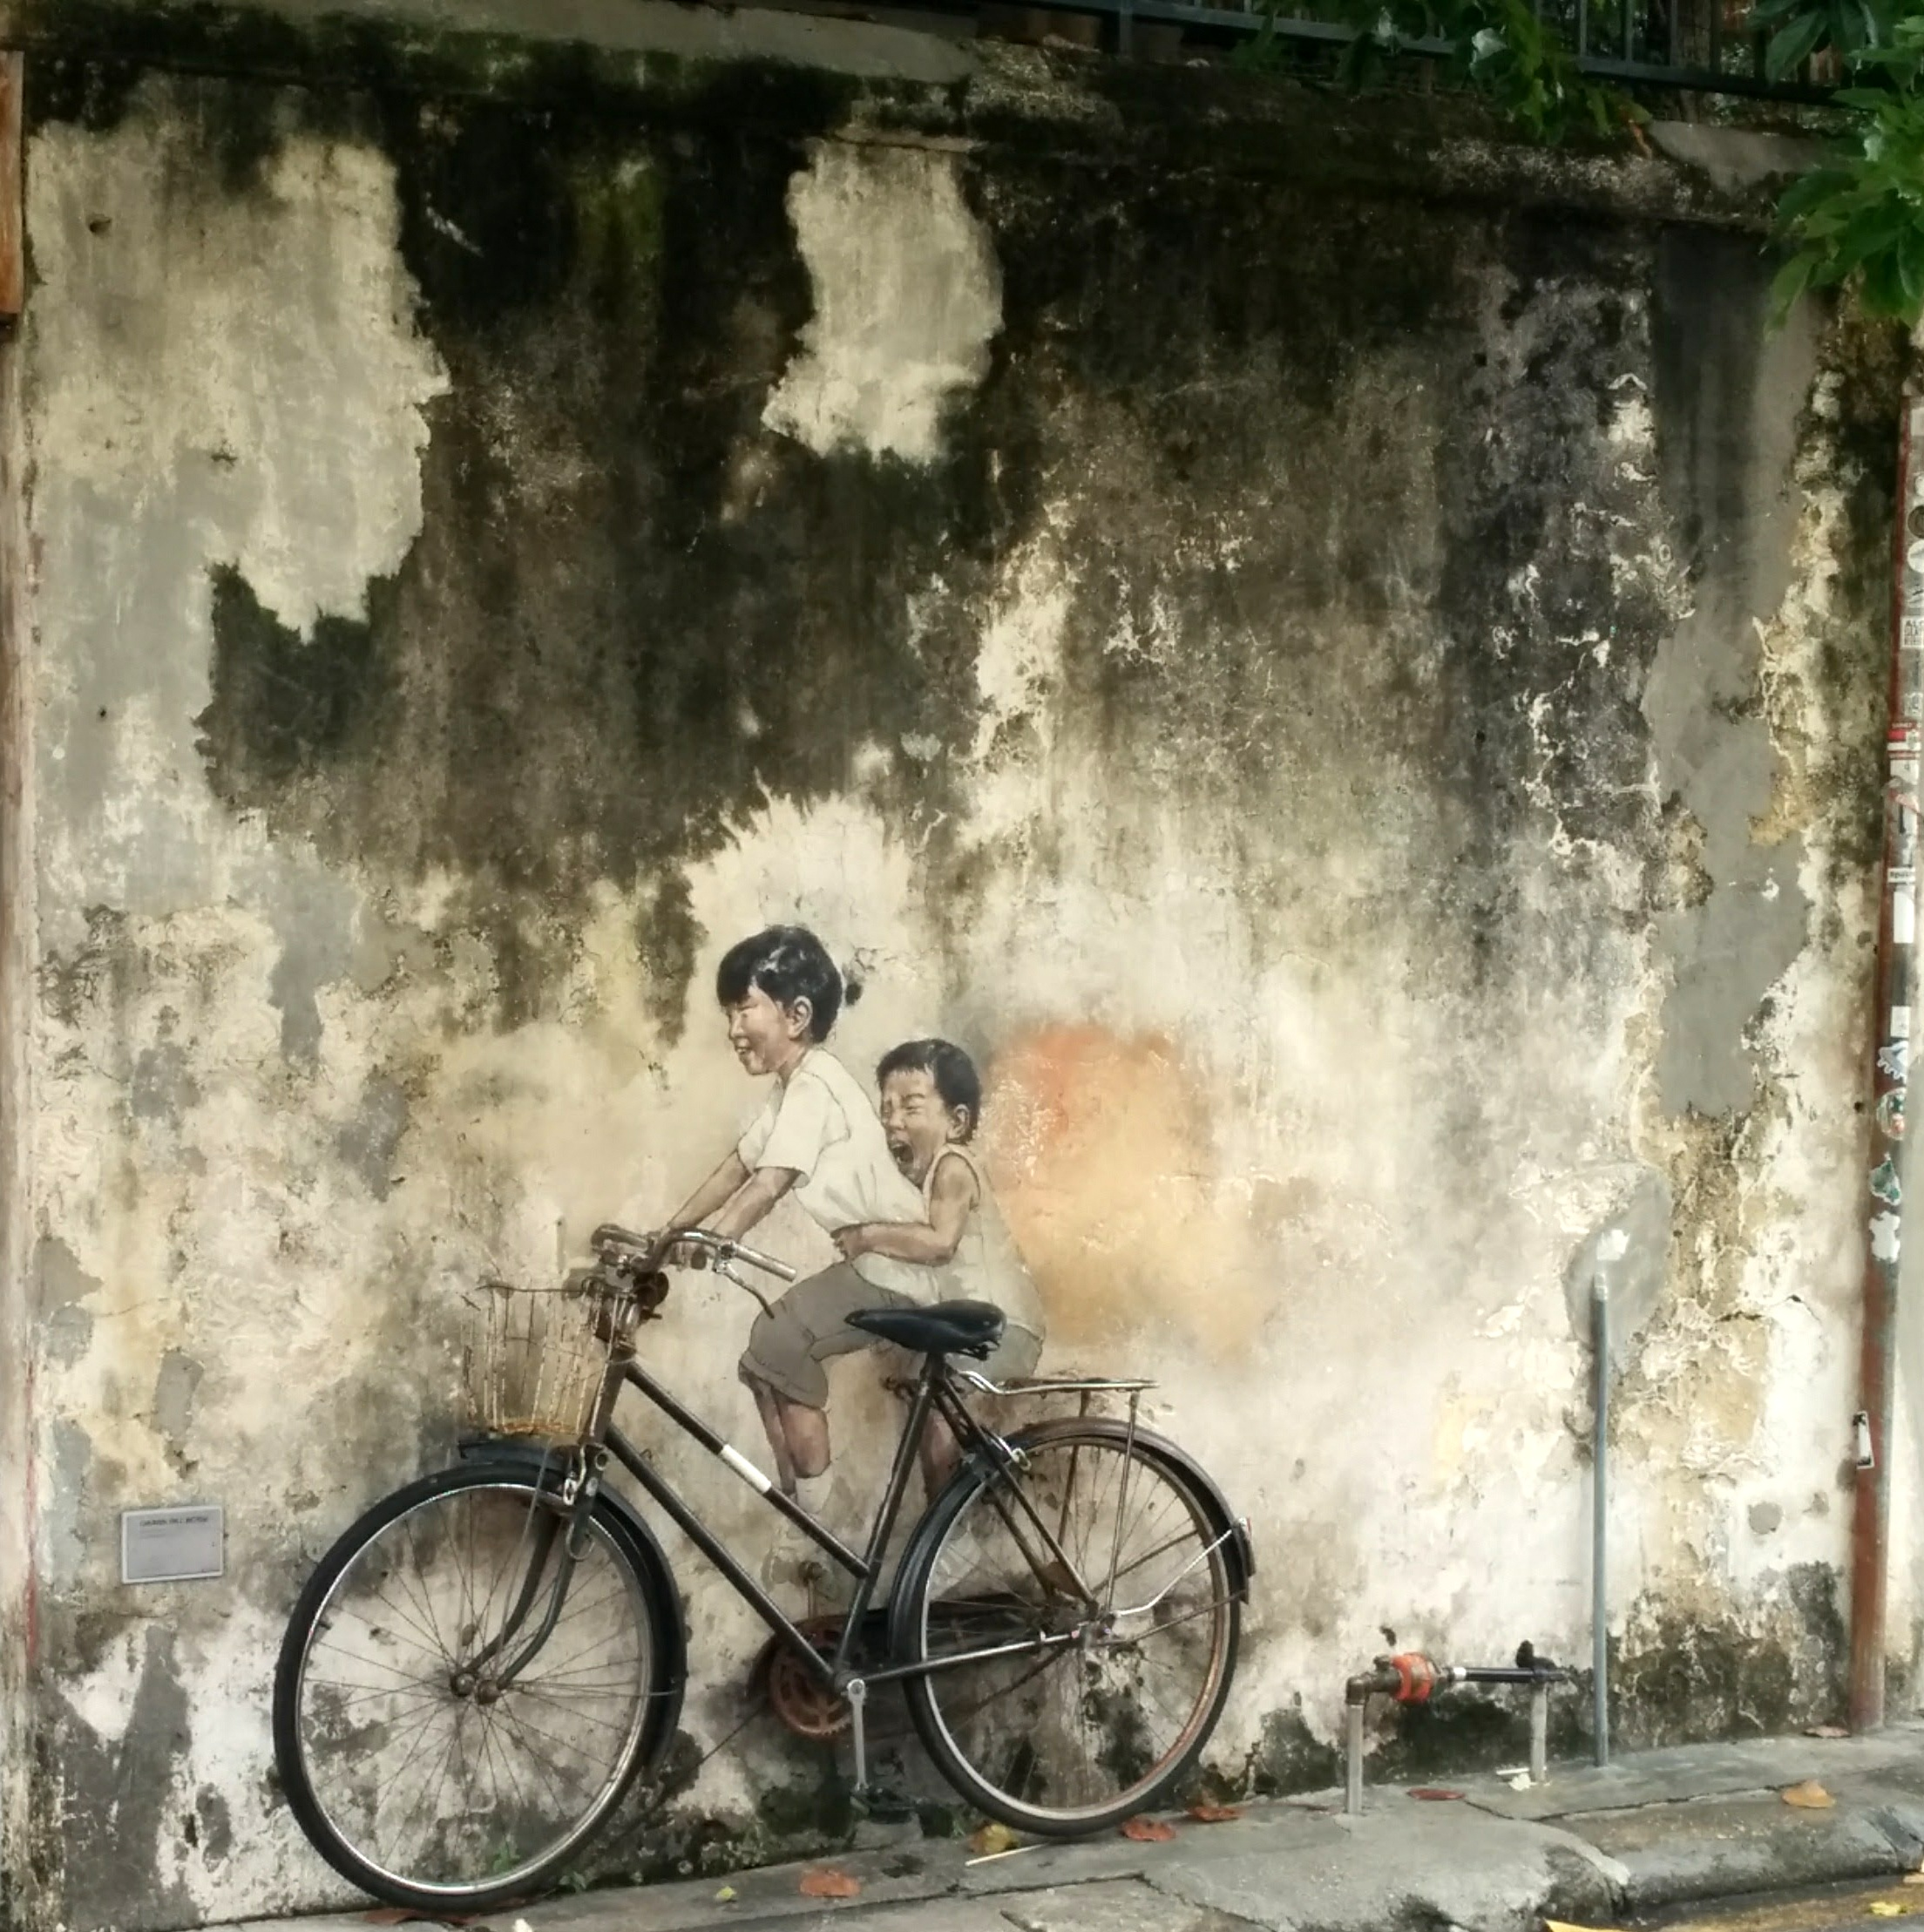 Penan'g most famous mural. It is a miracle that I caught it with no tourists!